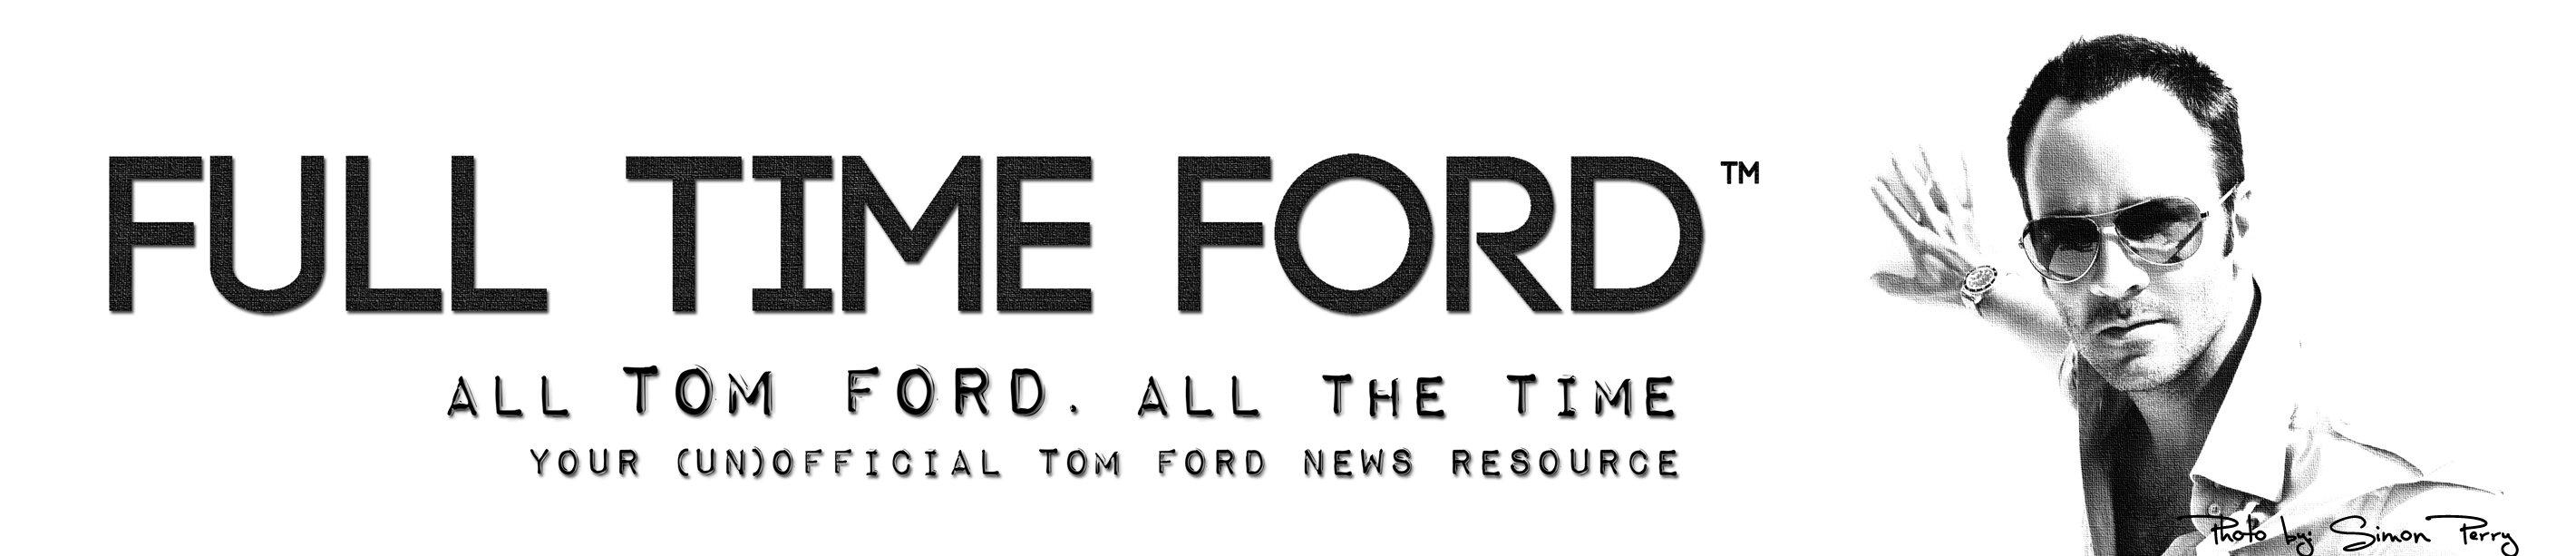 FULL TIME FORD™ header image